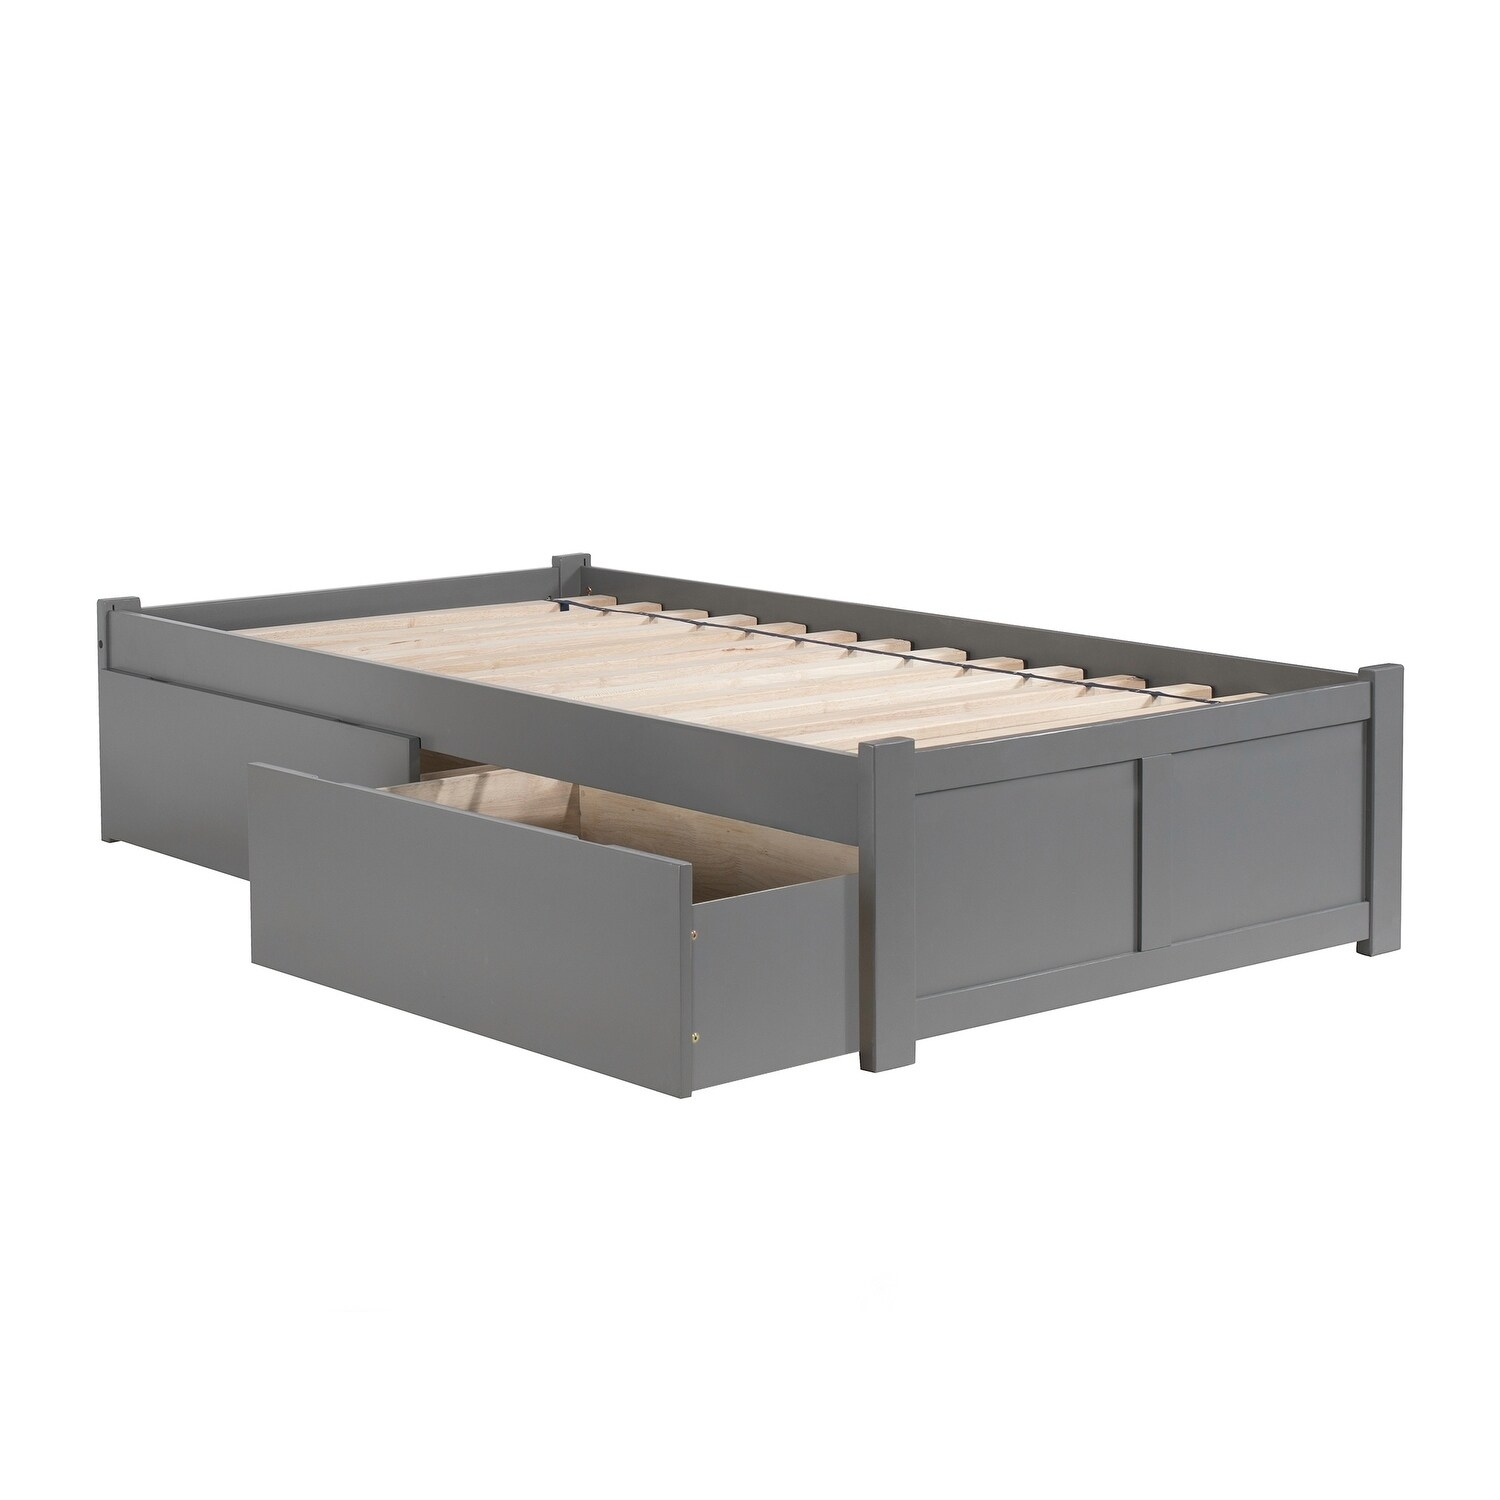 Concord Twin Platform Bed With Flat Panel Foot Board And 2 Urban Drawers In Atlantic Grey